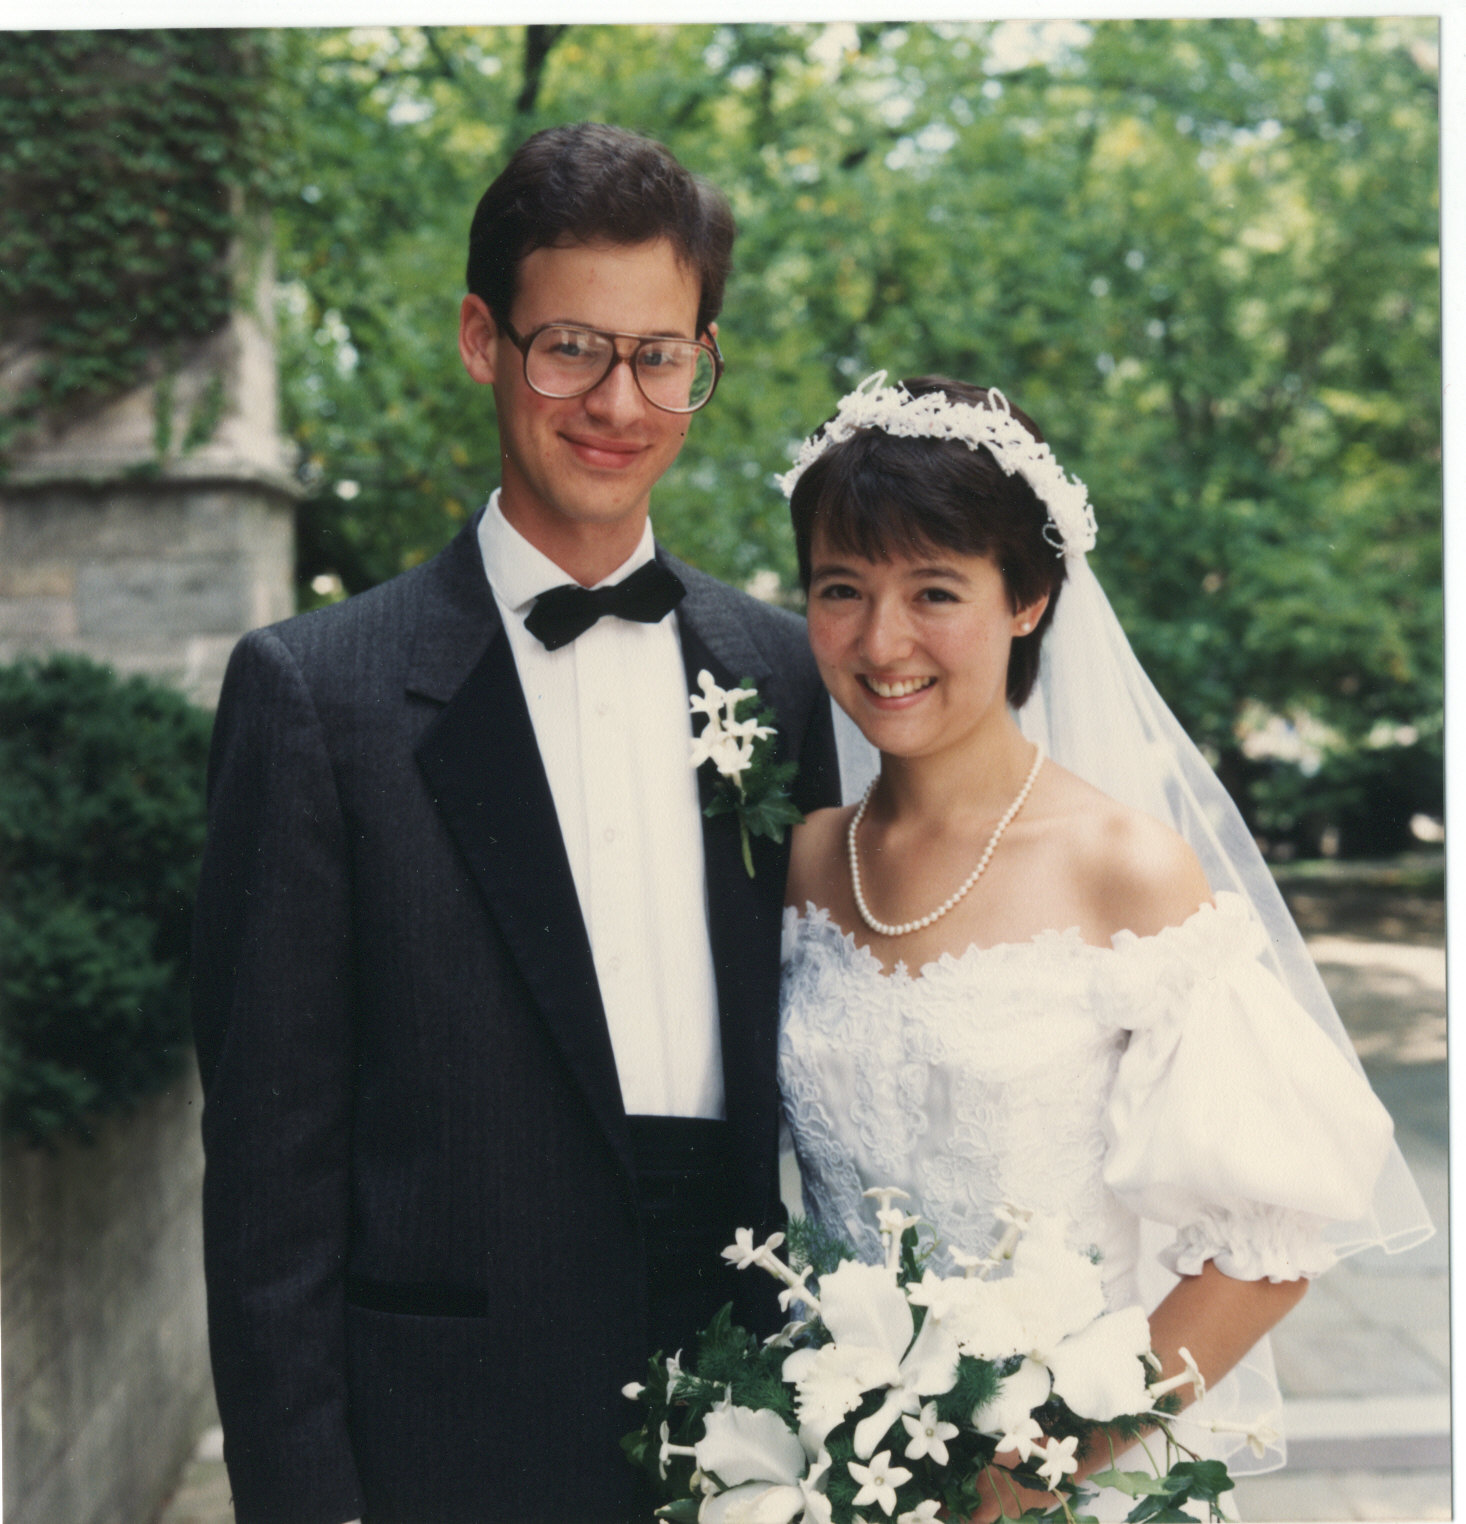 Dan and Naomi wedding 8.15.87, photo by Pryde Brown